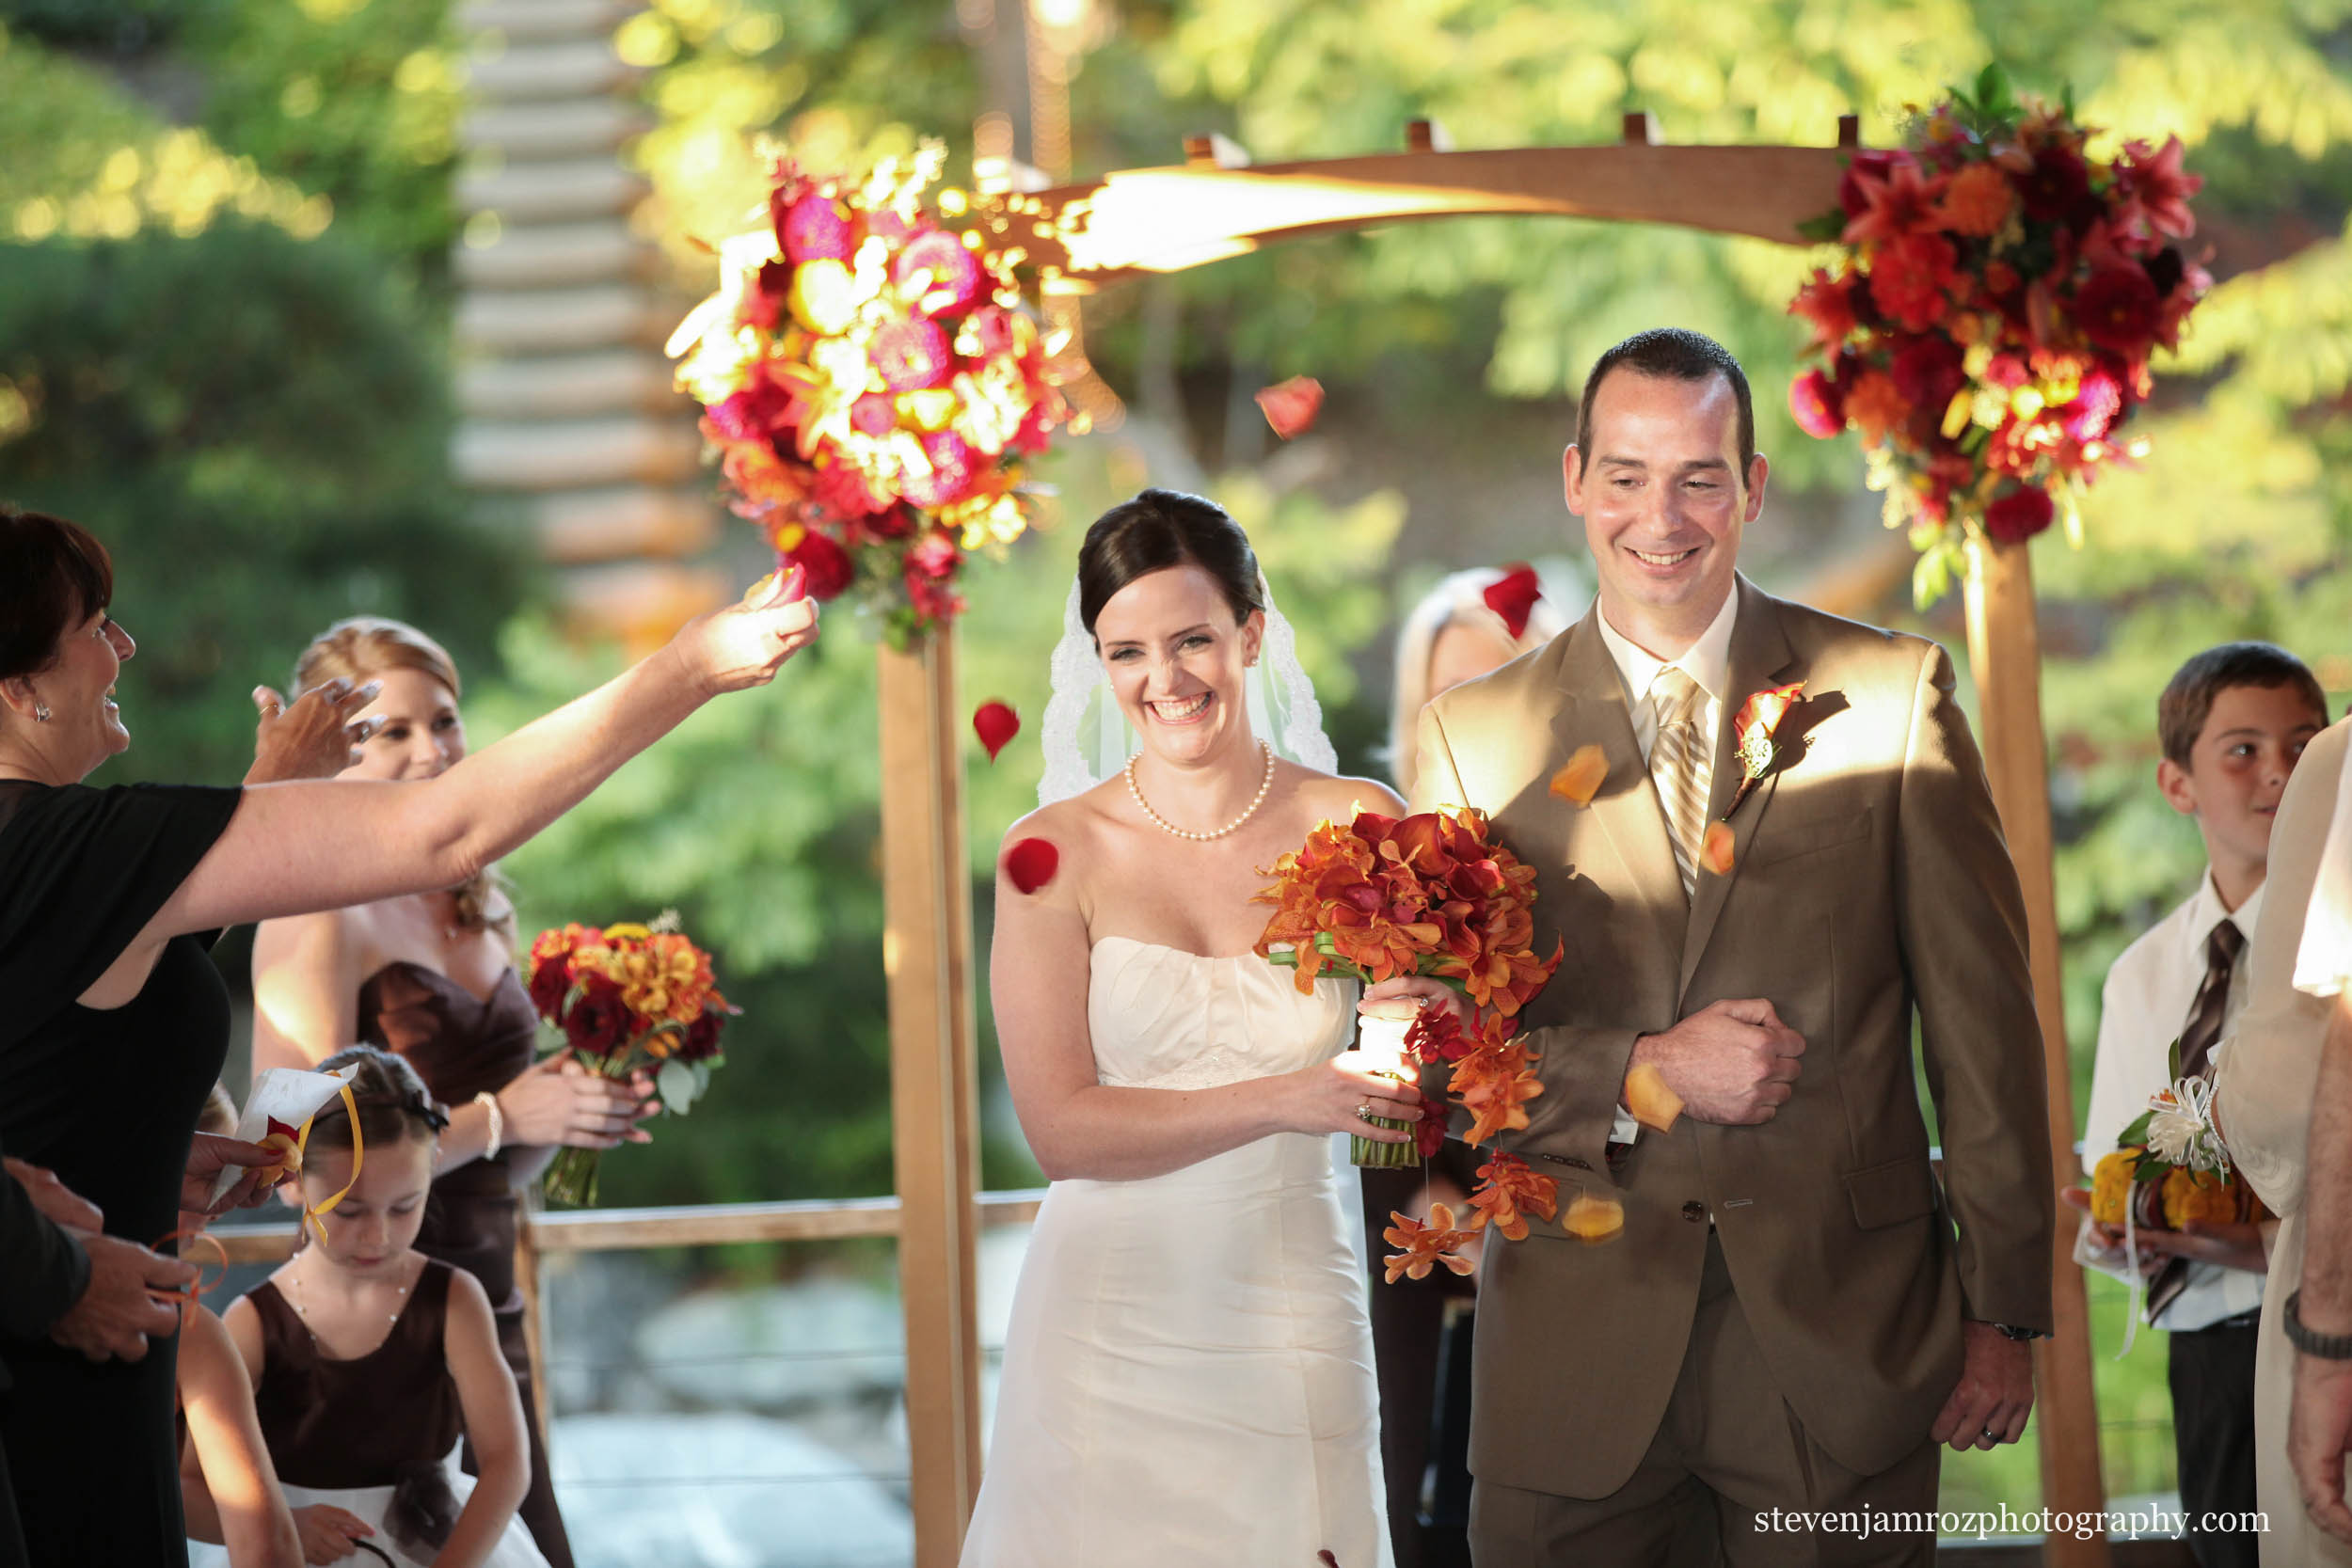 throwing-flowers-wedding-recessional-steven-jamroz-photography-0099.jpg